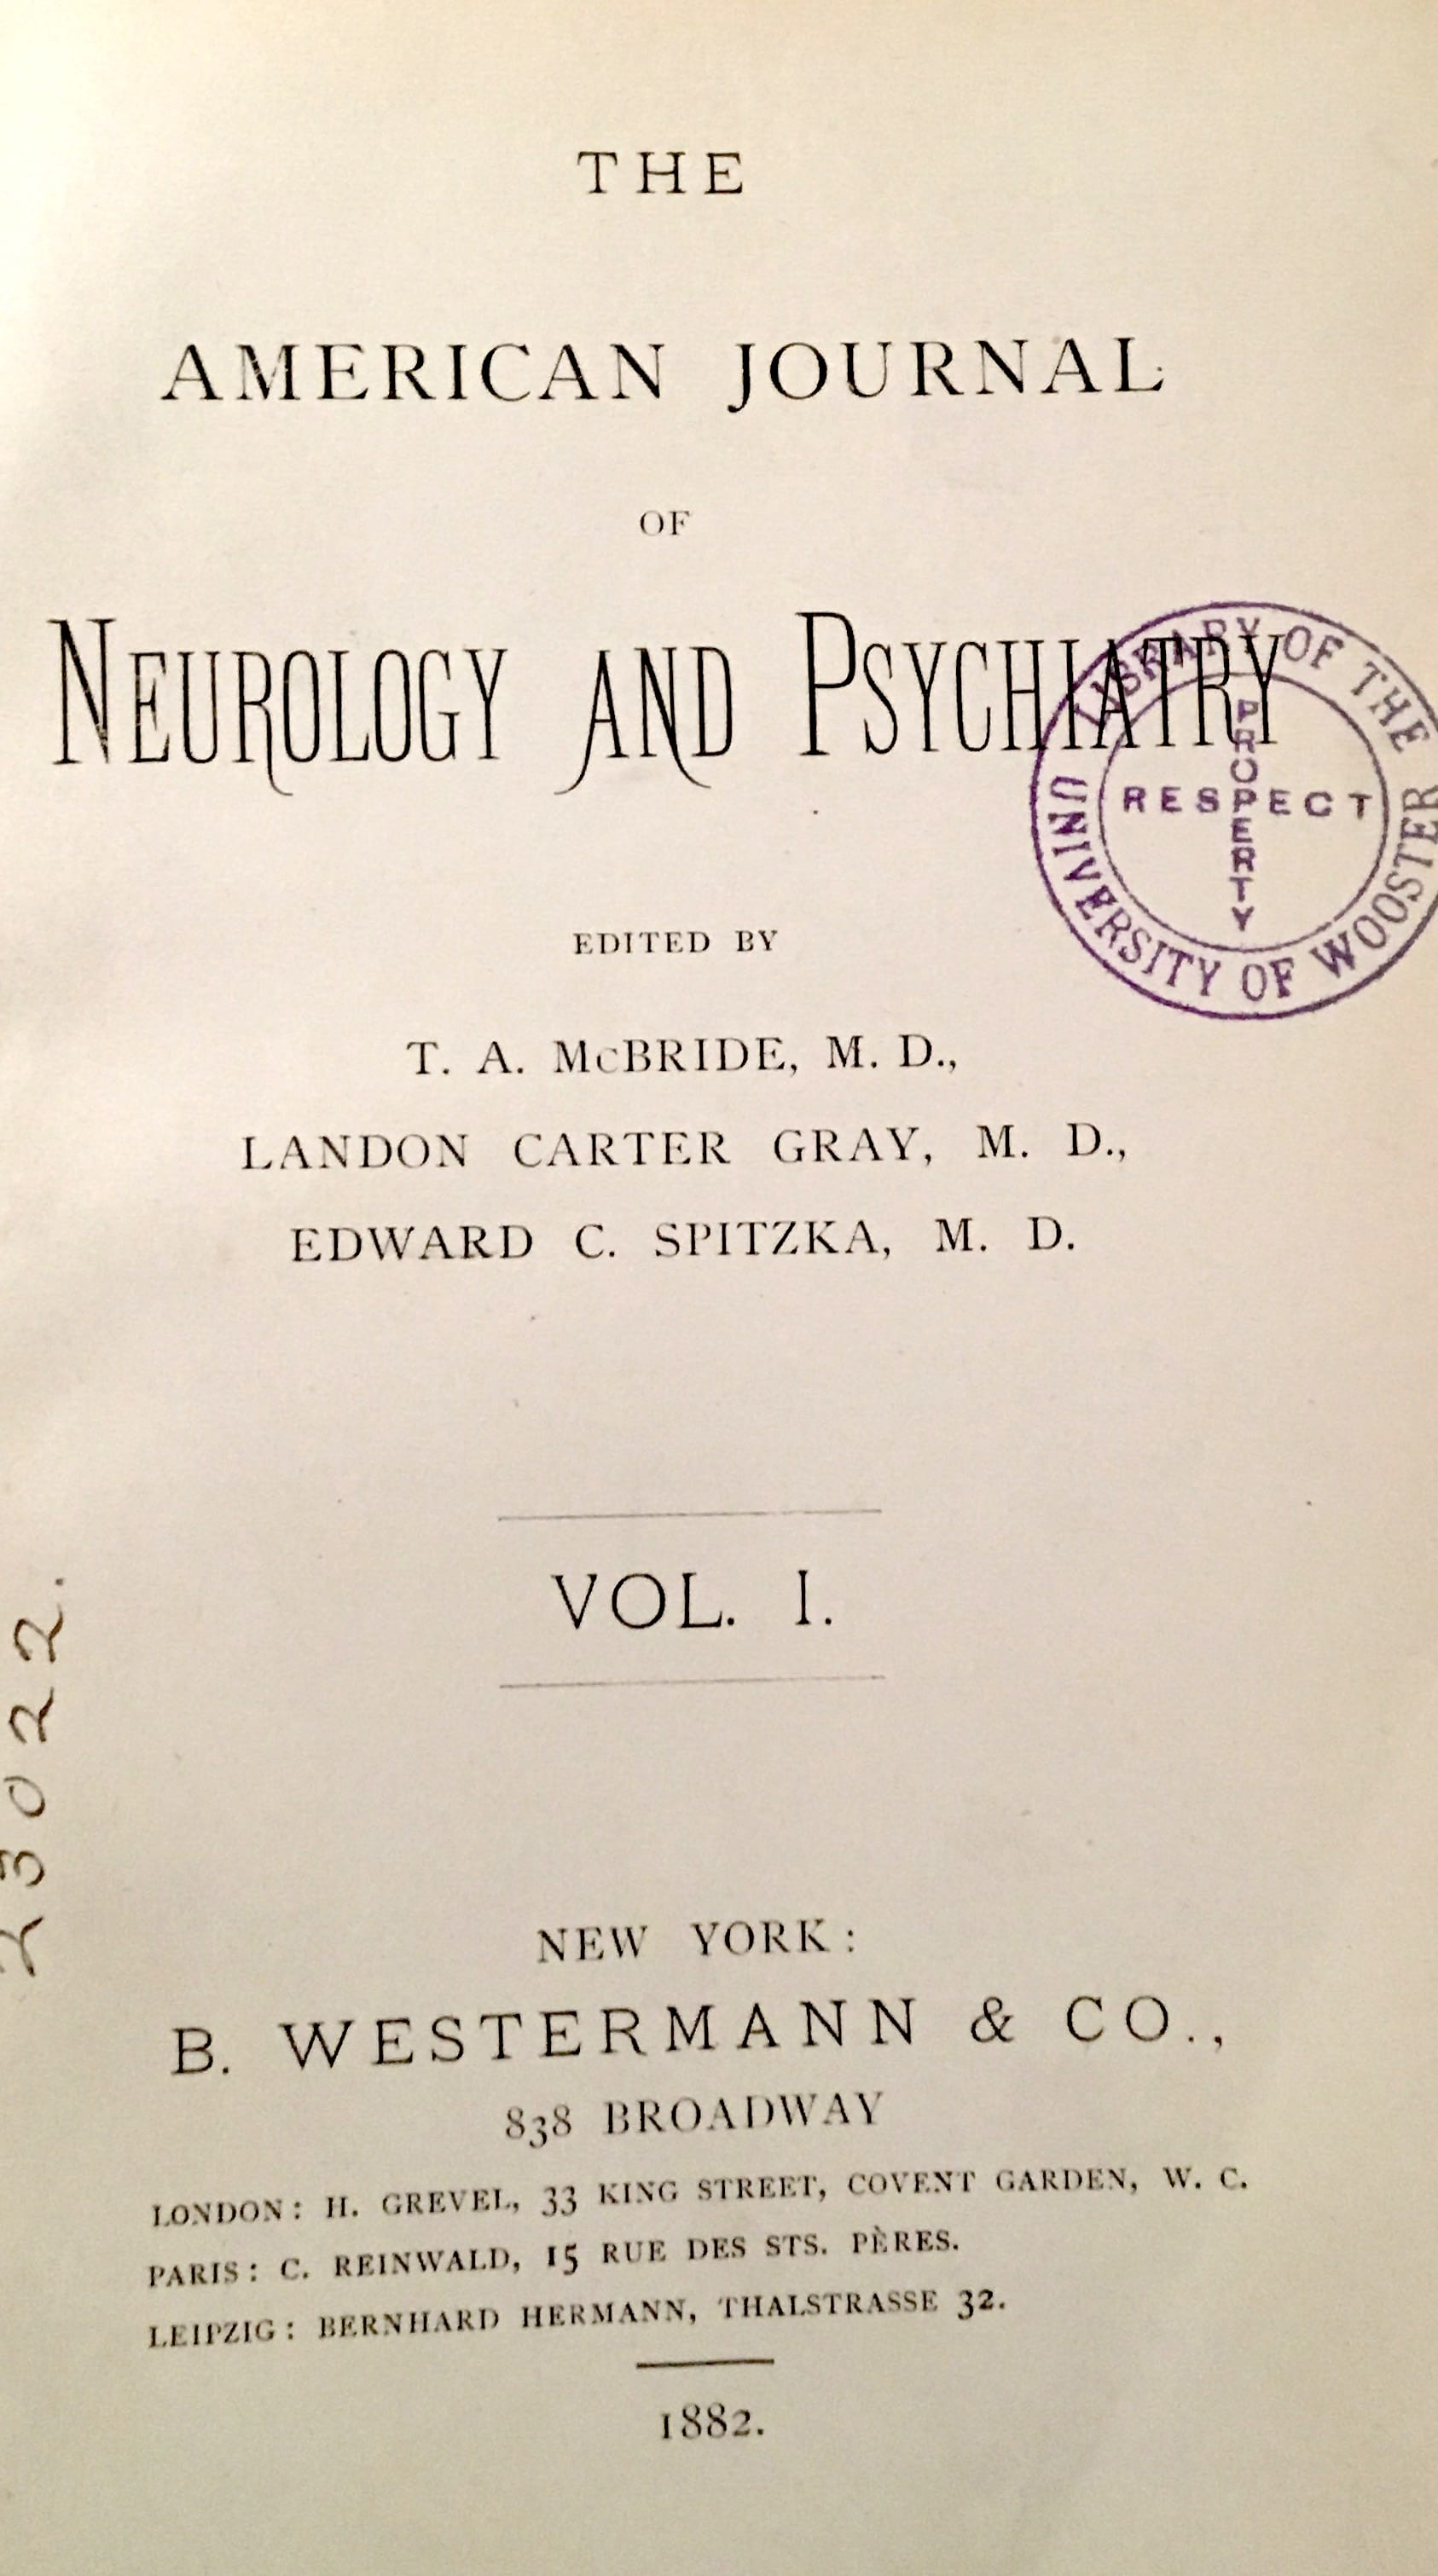 American Journal of Neurology and Psychiatry